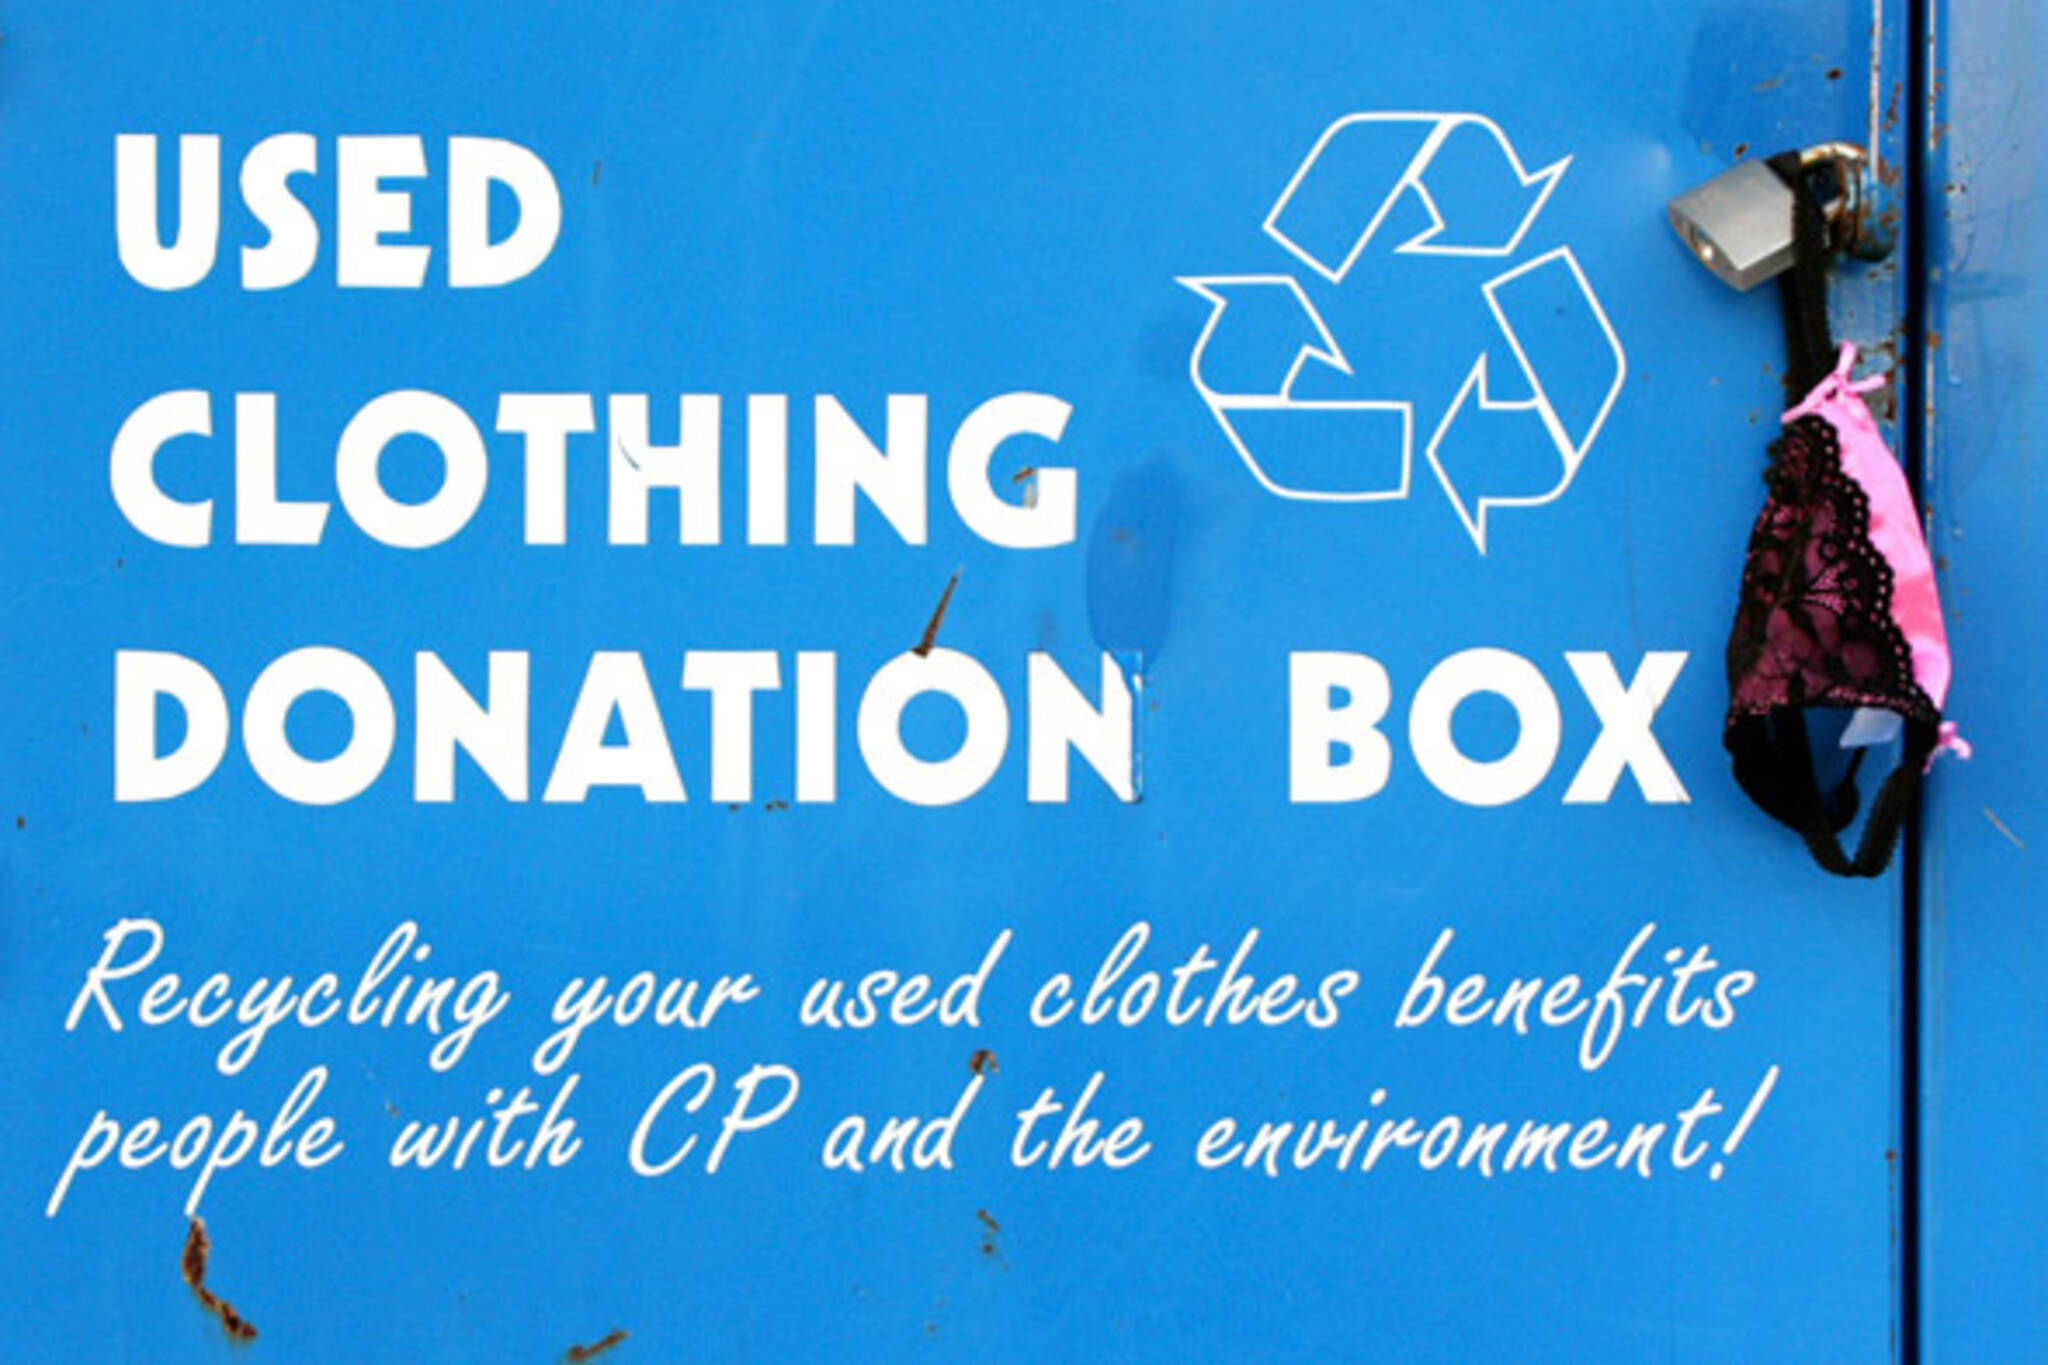 used clothing donation box toronto